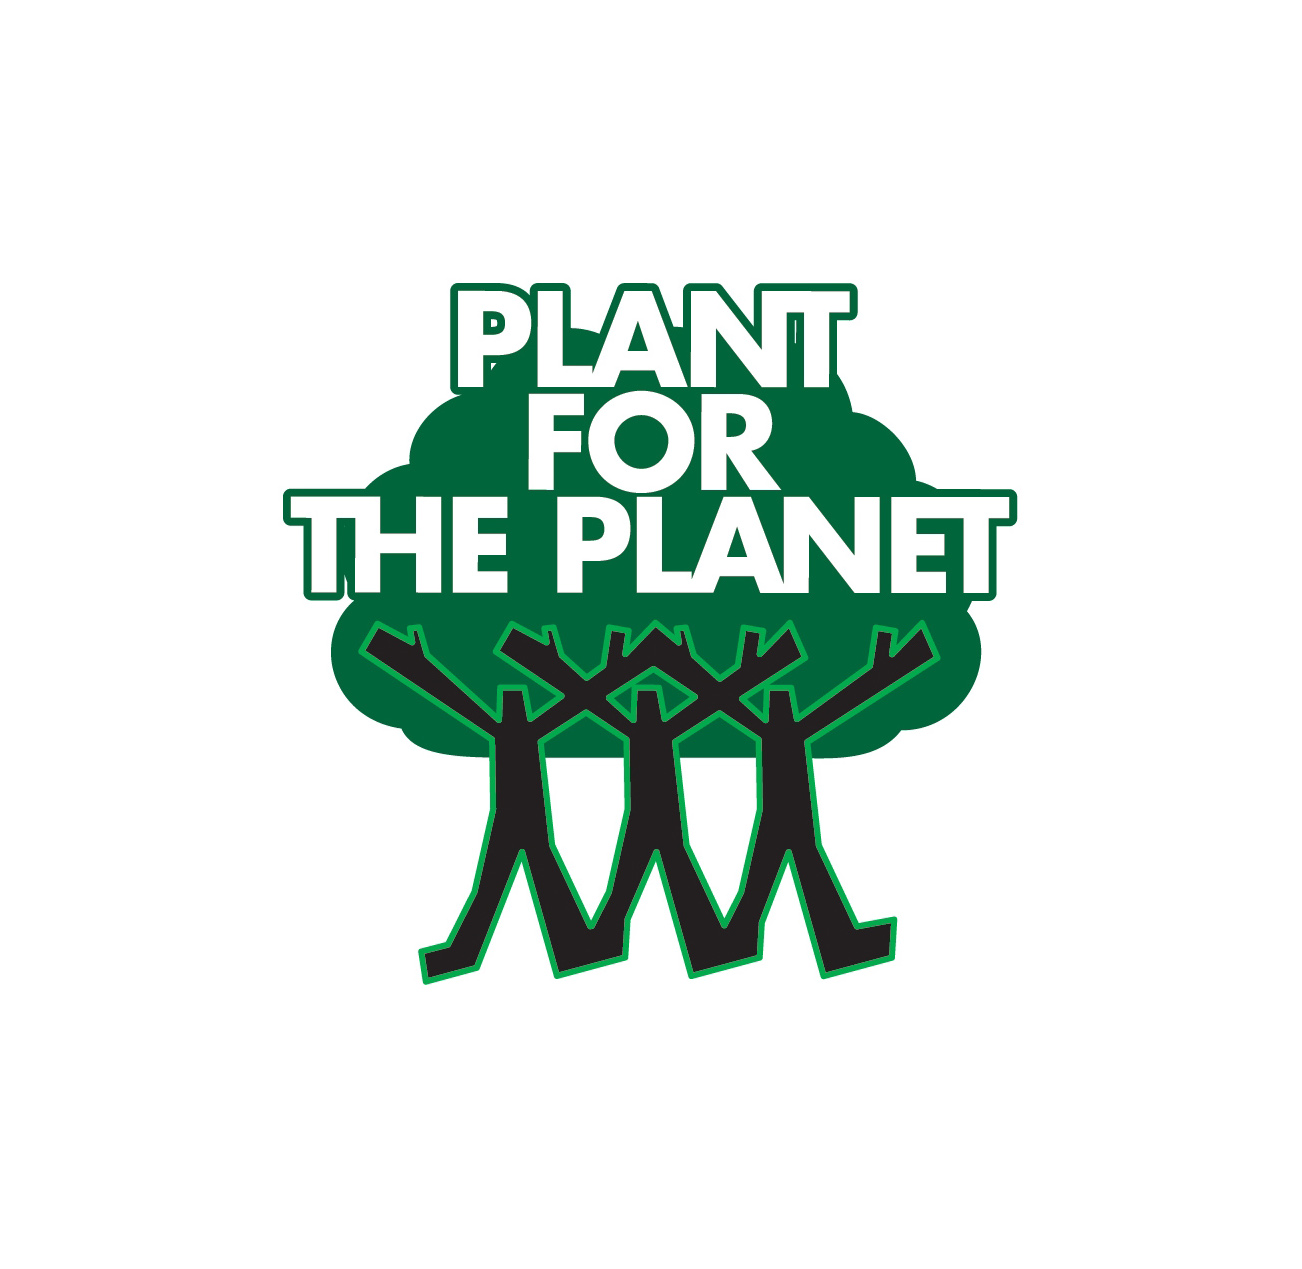 Resultado de imagen de plant for the planet